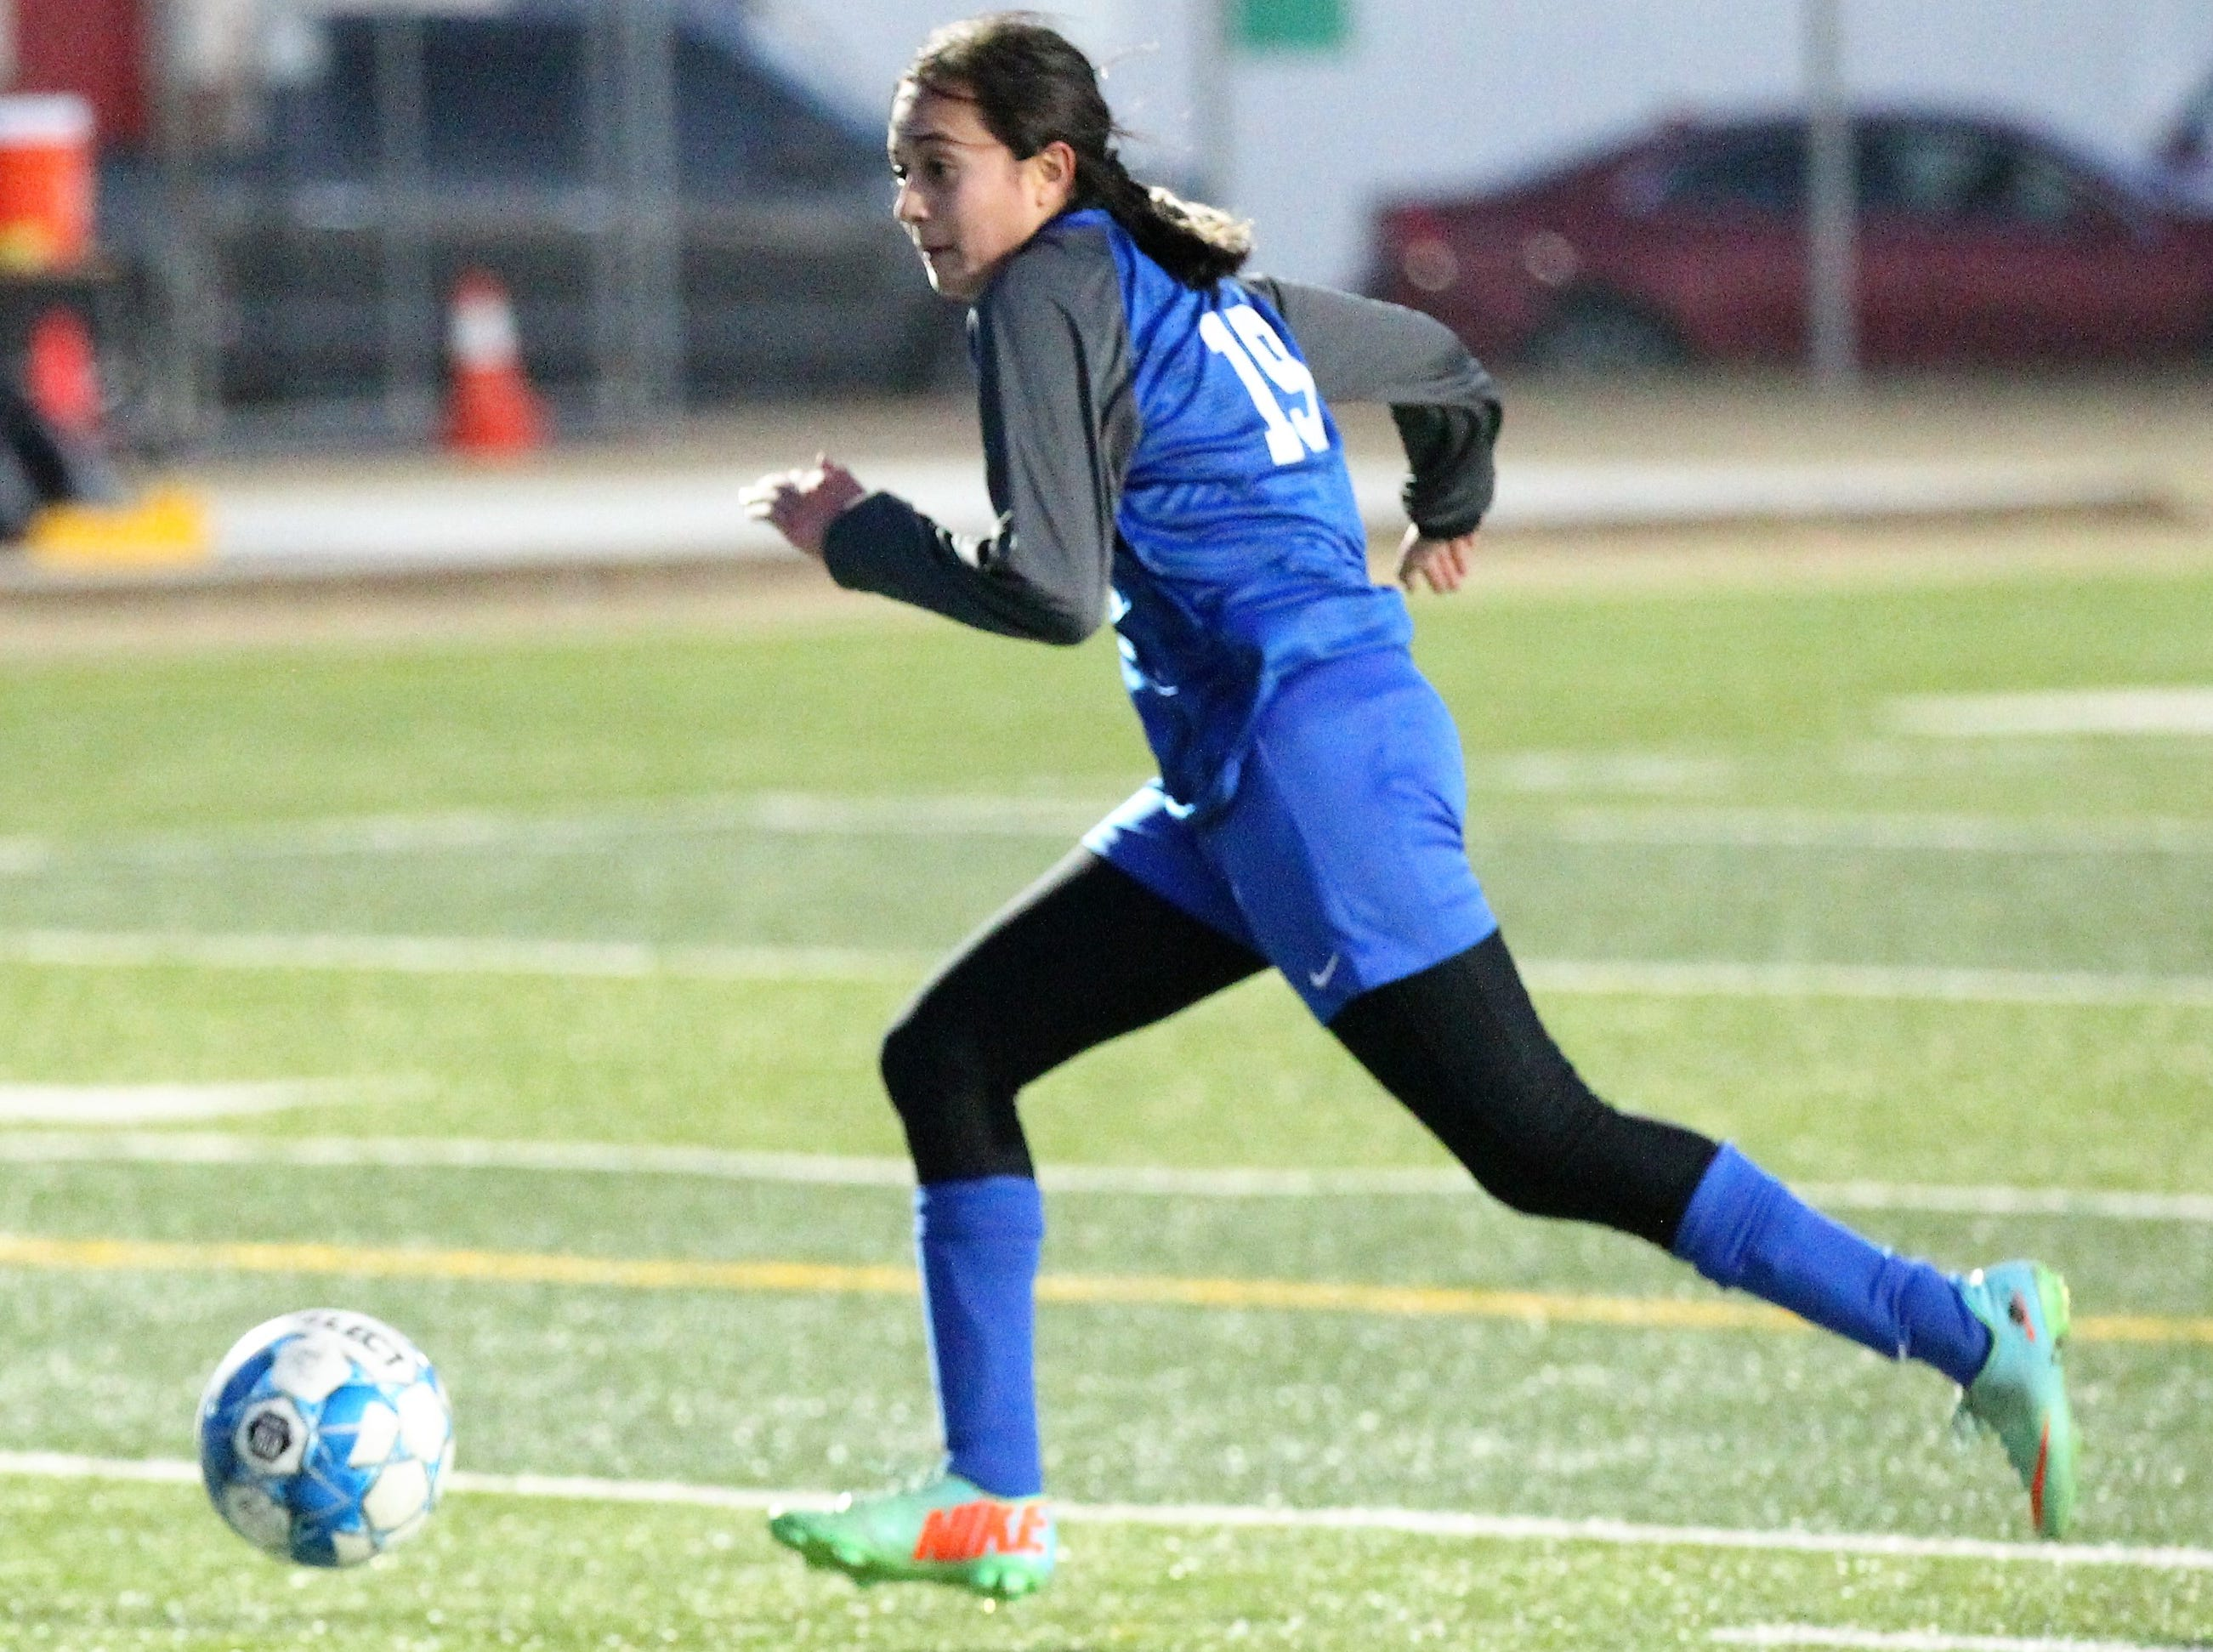 Lake View's Analica Garcia works the ball in a District 4-4A soccer match against Snyder at Old Bobcat Stadium on Tuesday, March 5, 2019. The Maidens won 8-0 to secure the district title.